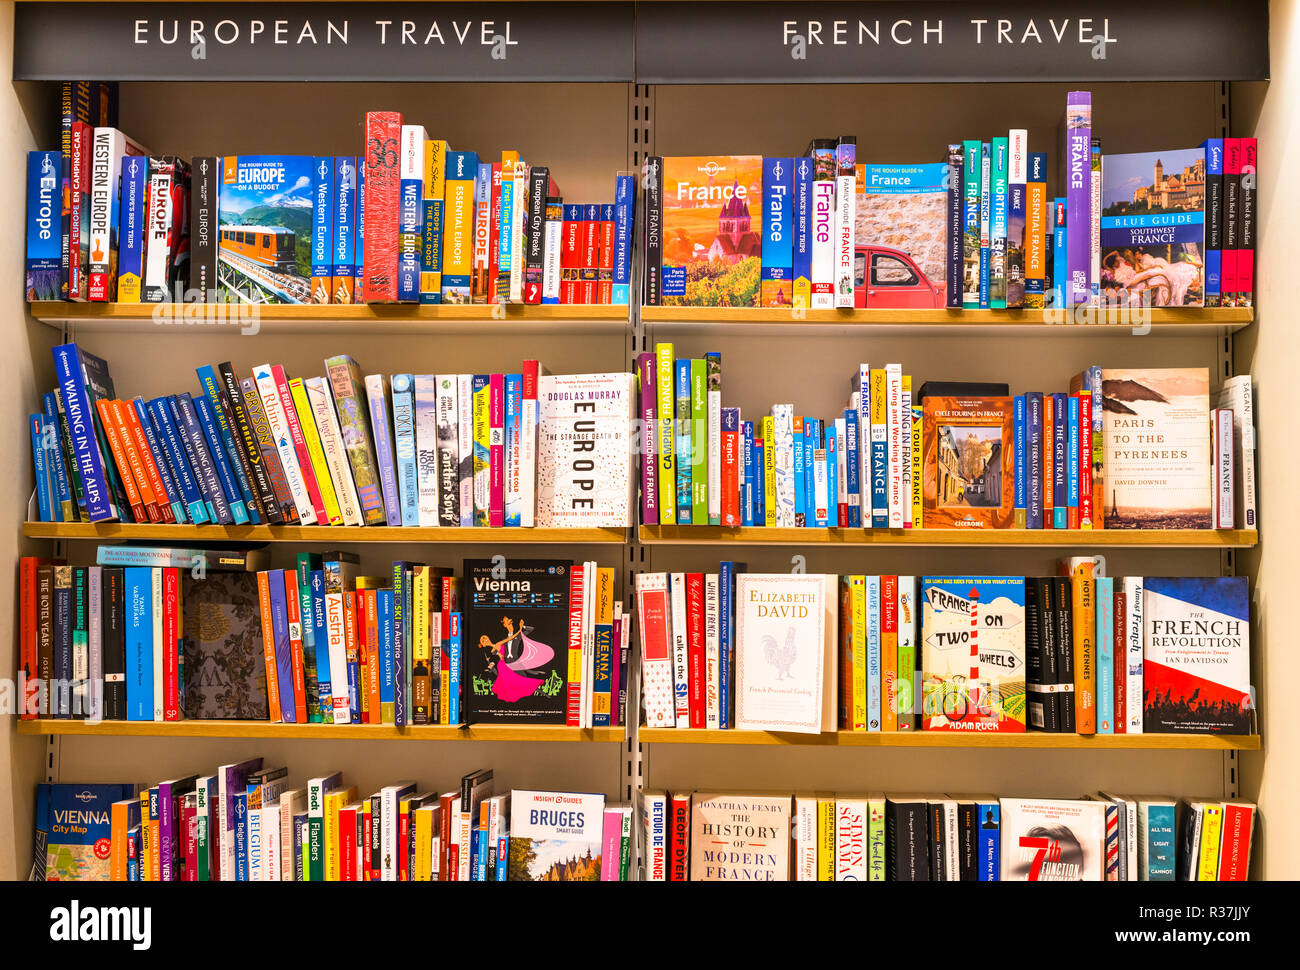 Travel guide book on sales on shelves of local Bookshop in Cambridge, England, UK - Stock Image